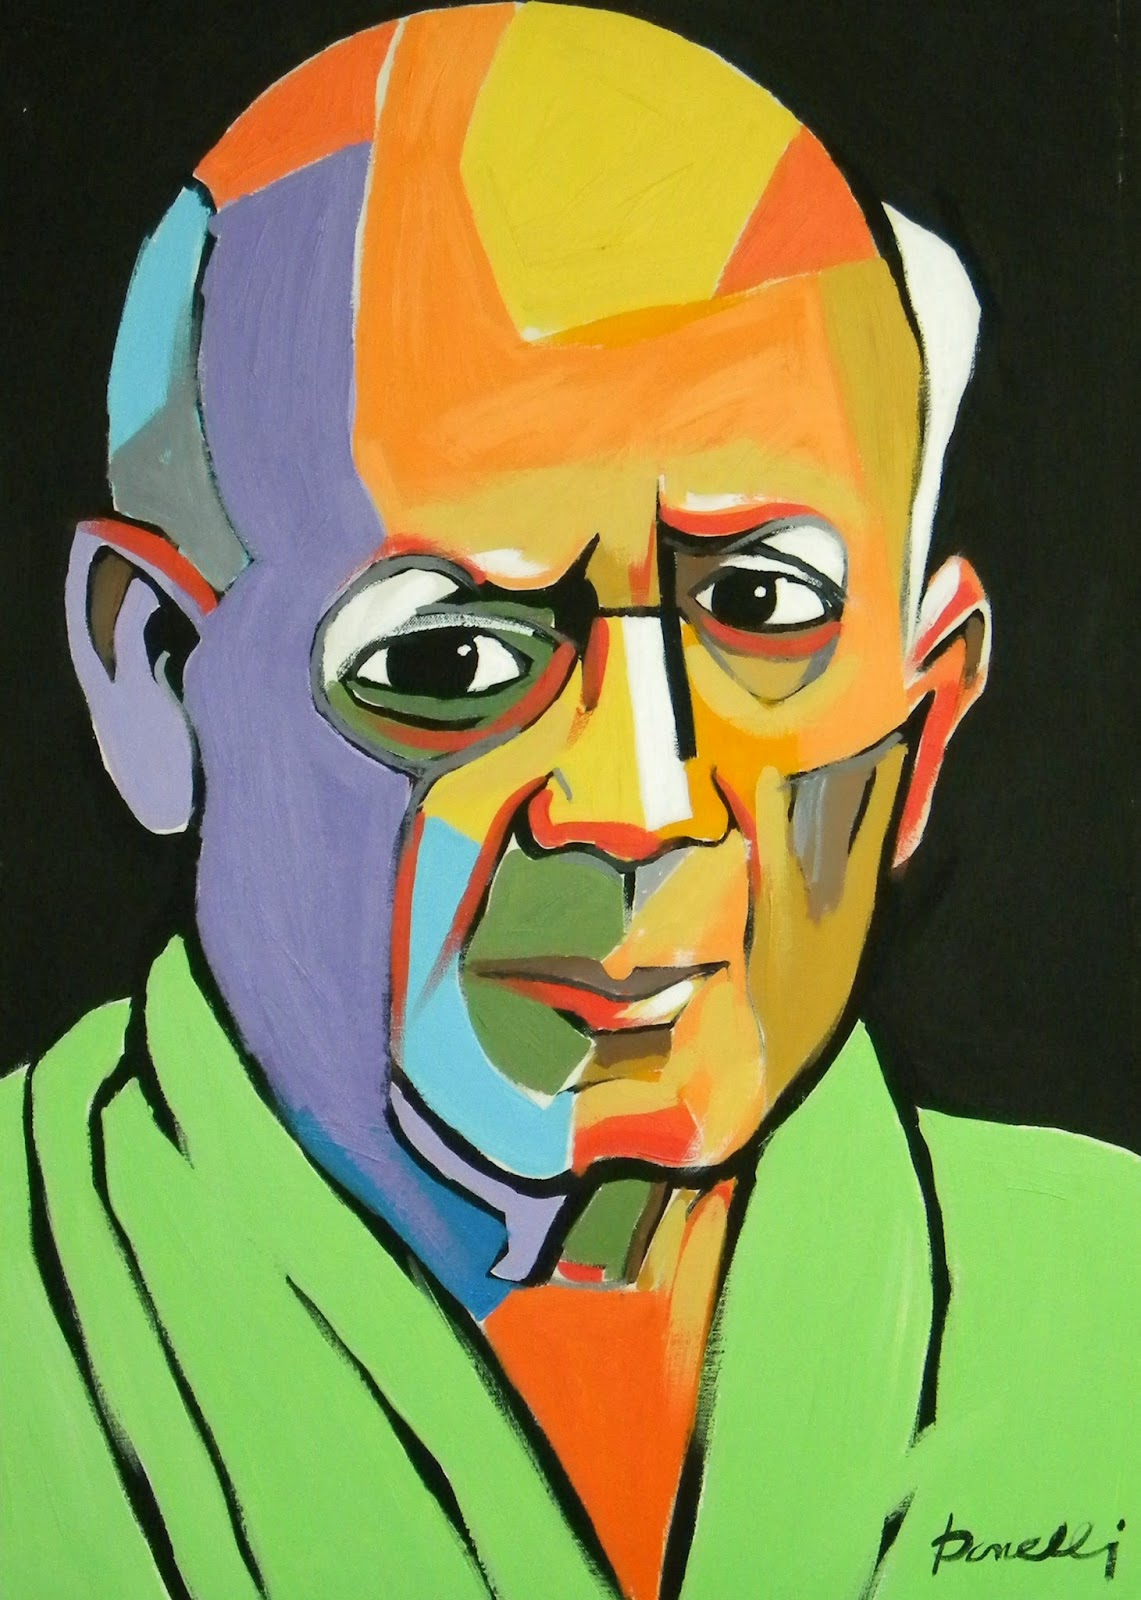 A self-portrait painting by Pablo Picasso